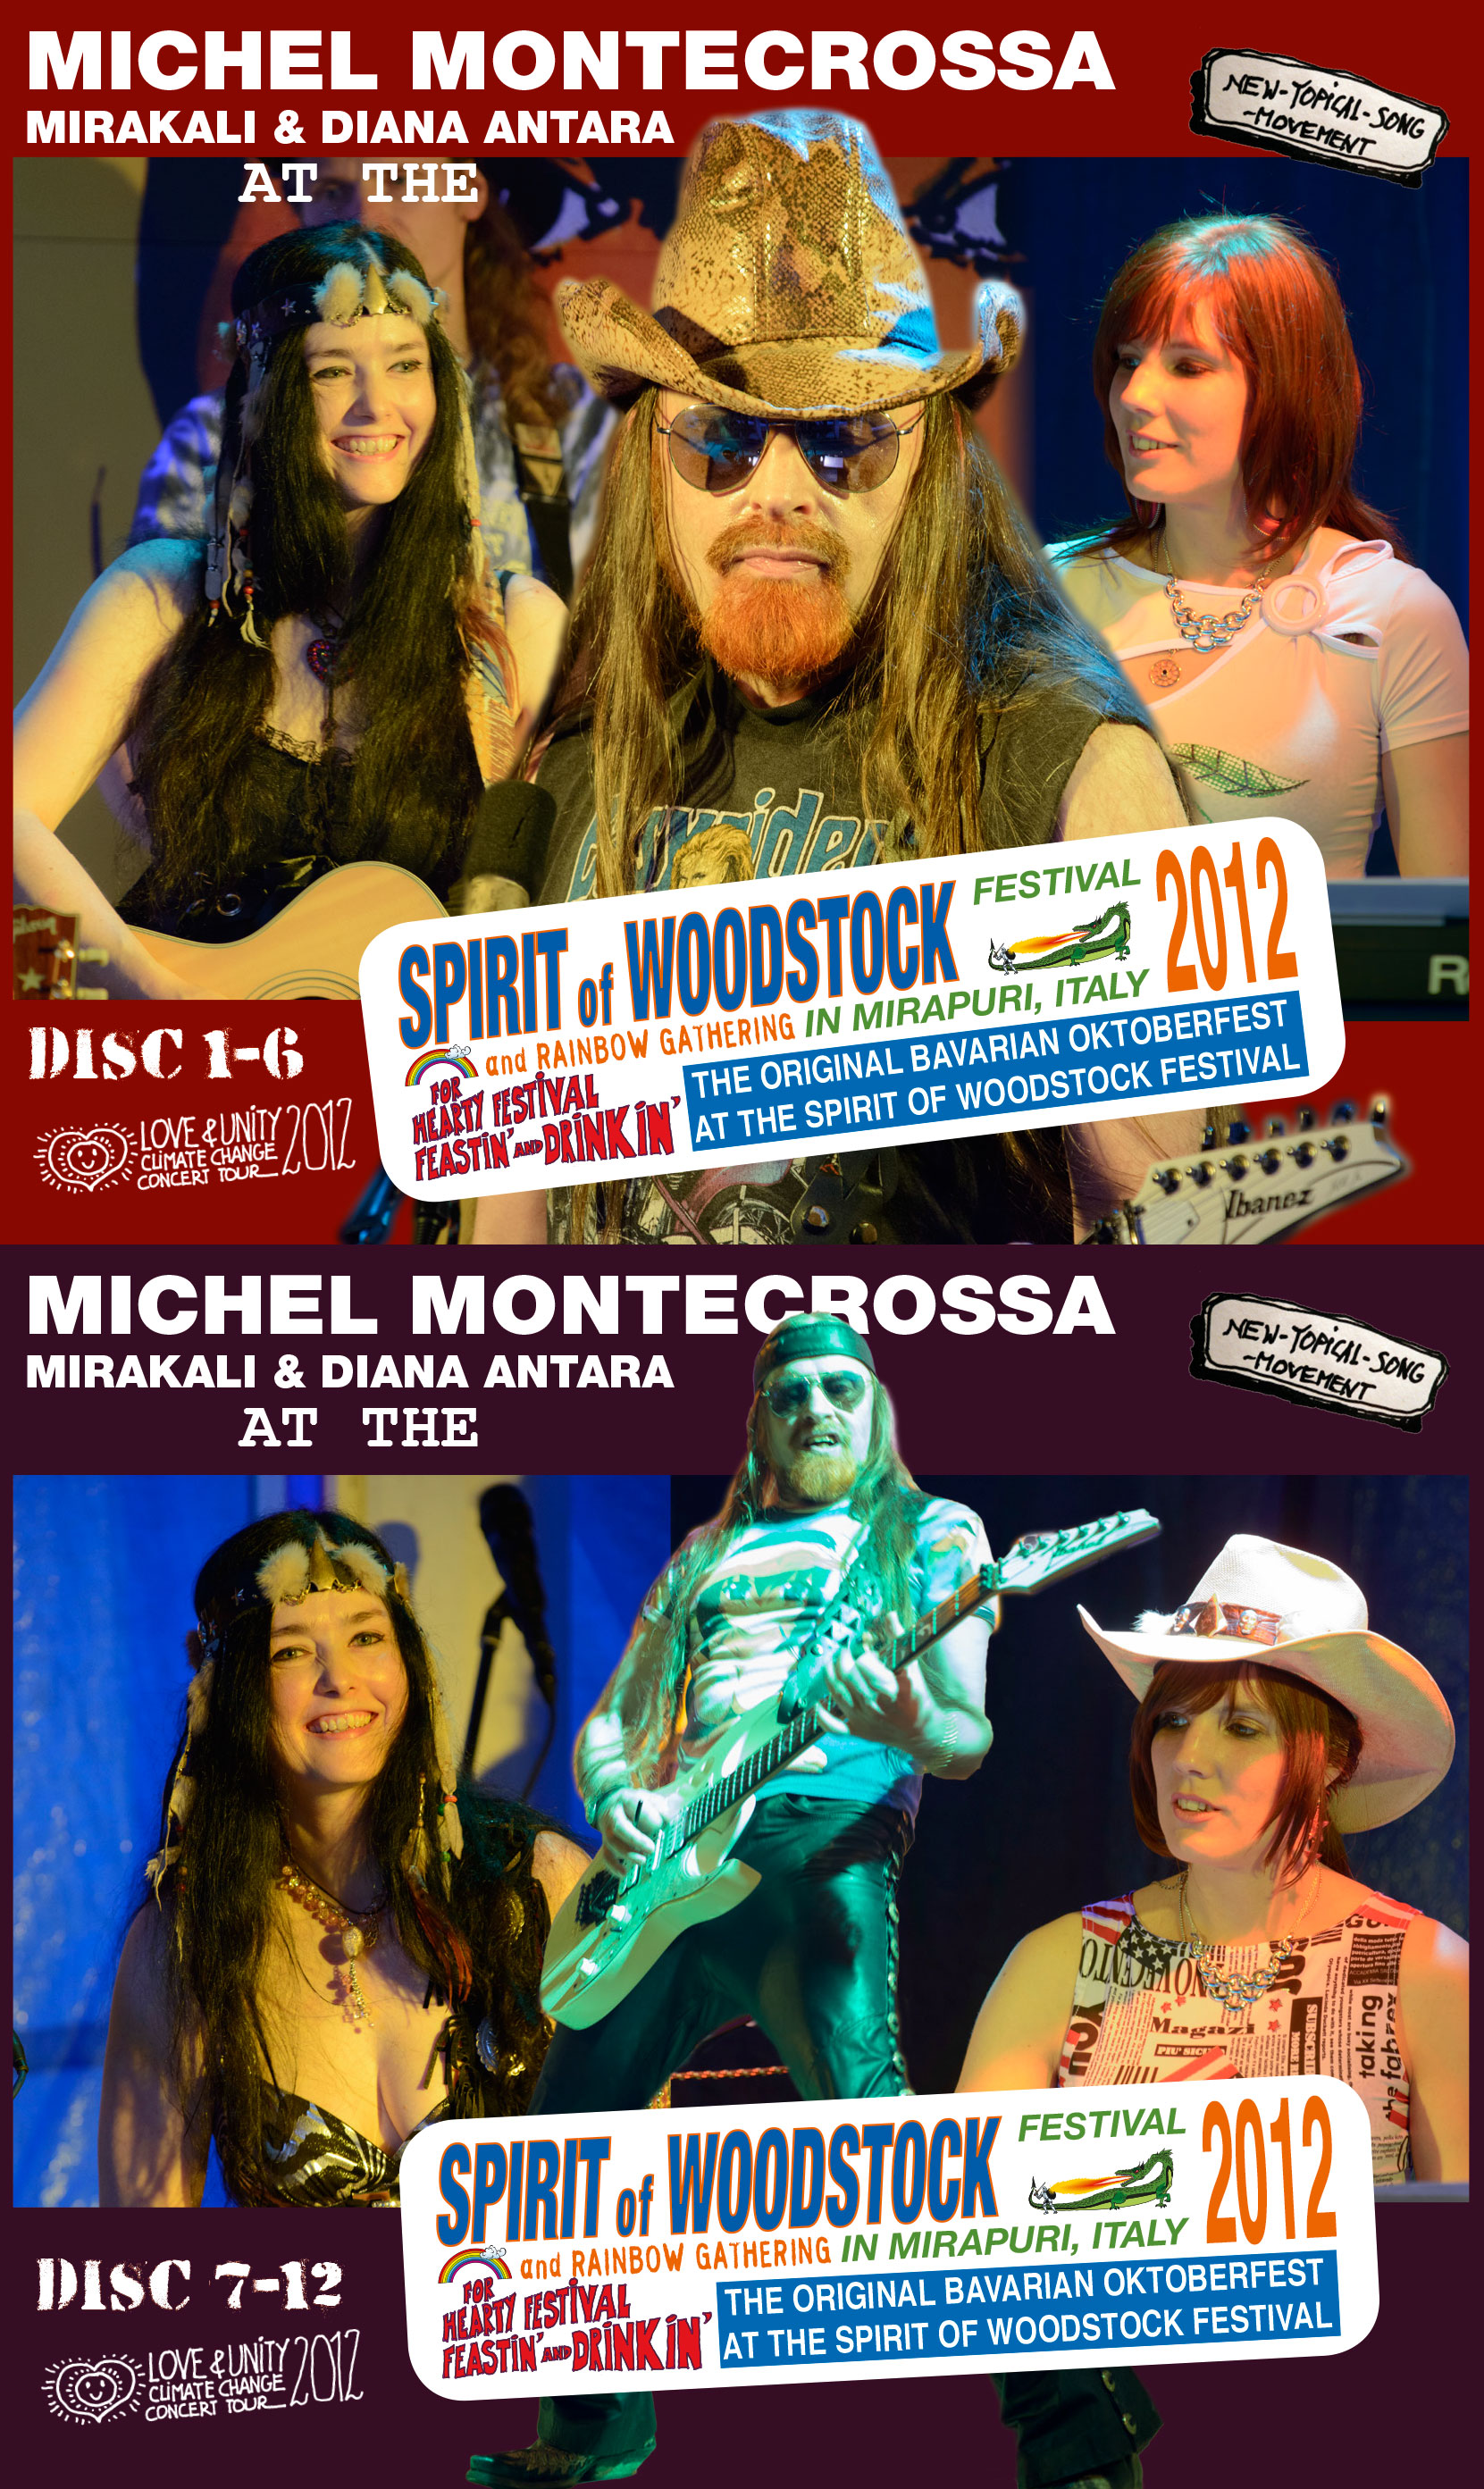 Michel Montecrossa, Mirakali and Diana Antara at the Spirit of Woodstock Festival 2012 in Mirapuri, Italy